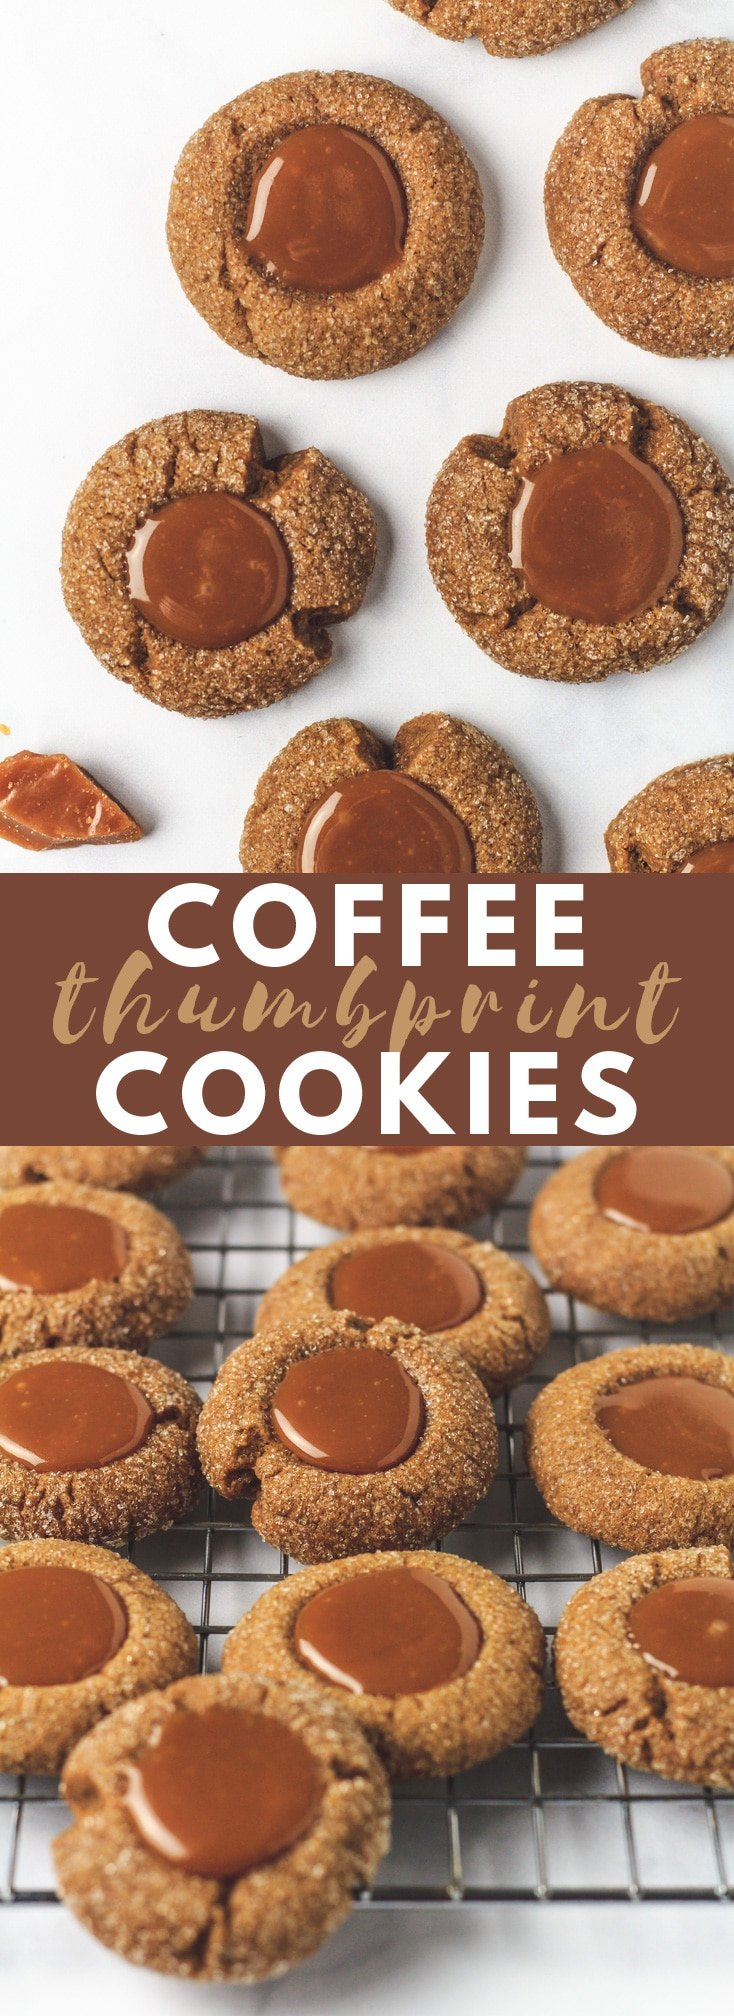 Coffee Thumbprint Cookies - Crispy on the outside and soft and chewy on the inside, these thumbprint cookies are perfectly infused with coffee, and filled with a caramel centre!